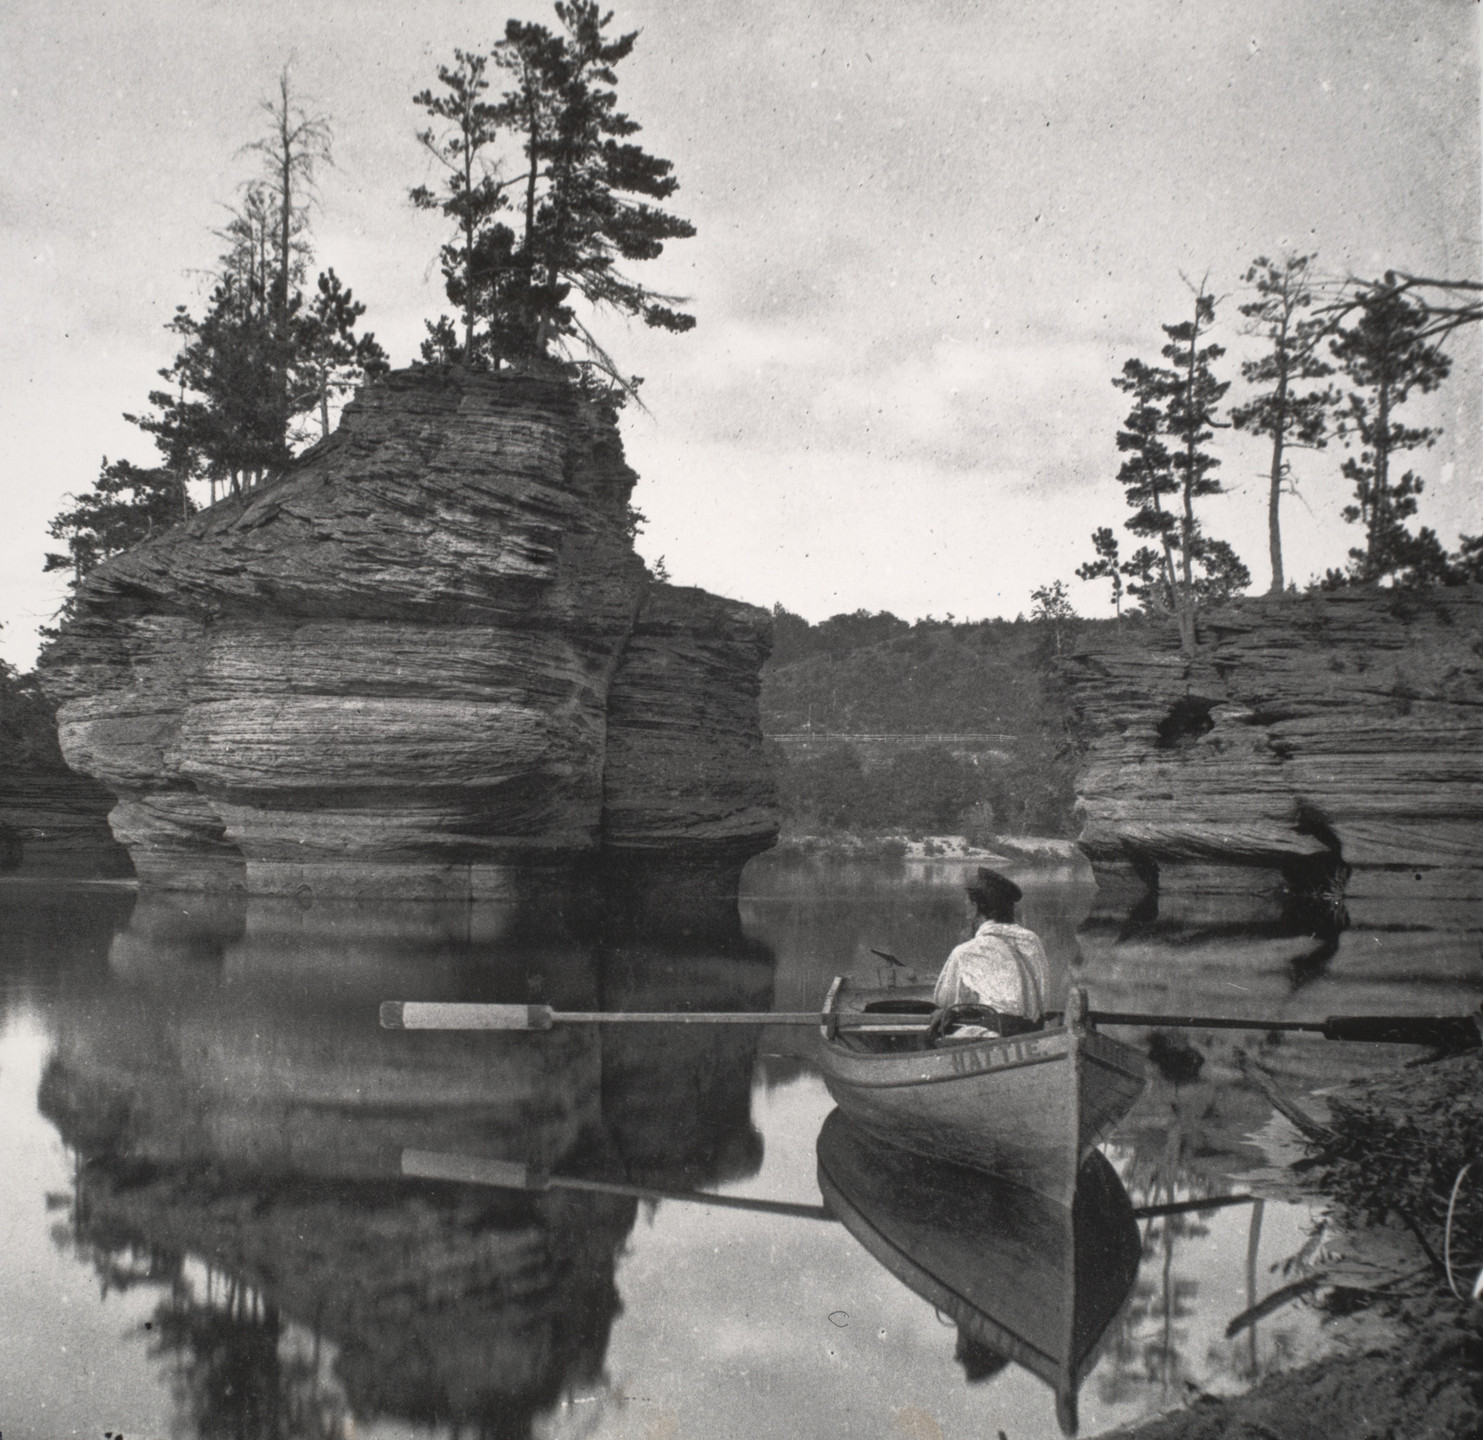 Henry Hamilton Bennett. Sugar Bowl with Row Boat, Wisconsin Dells. c. 1889